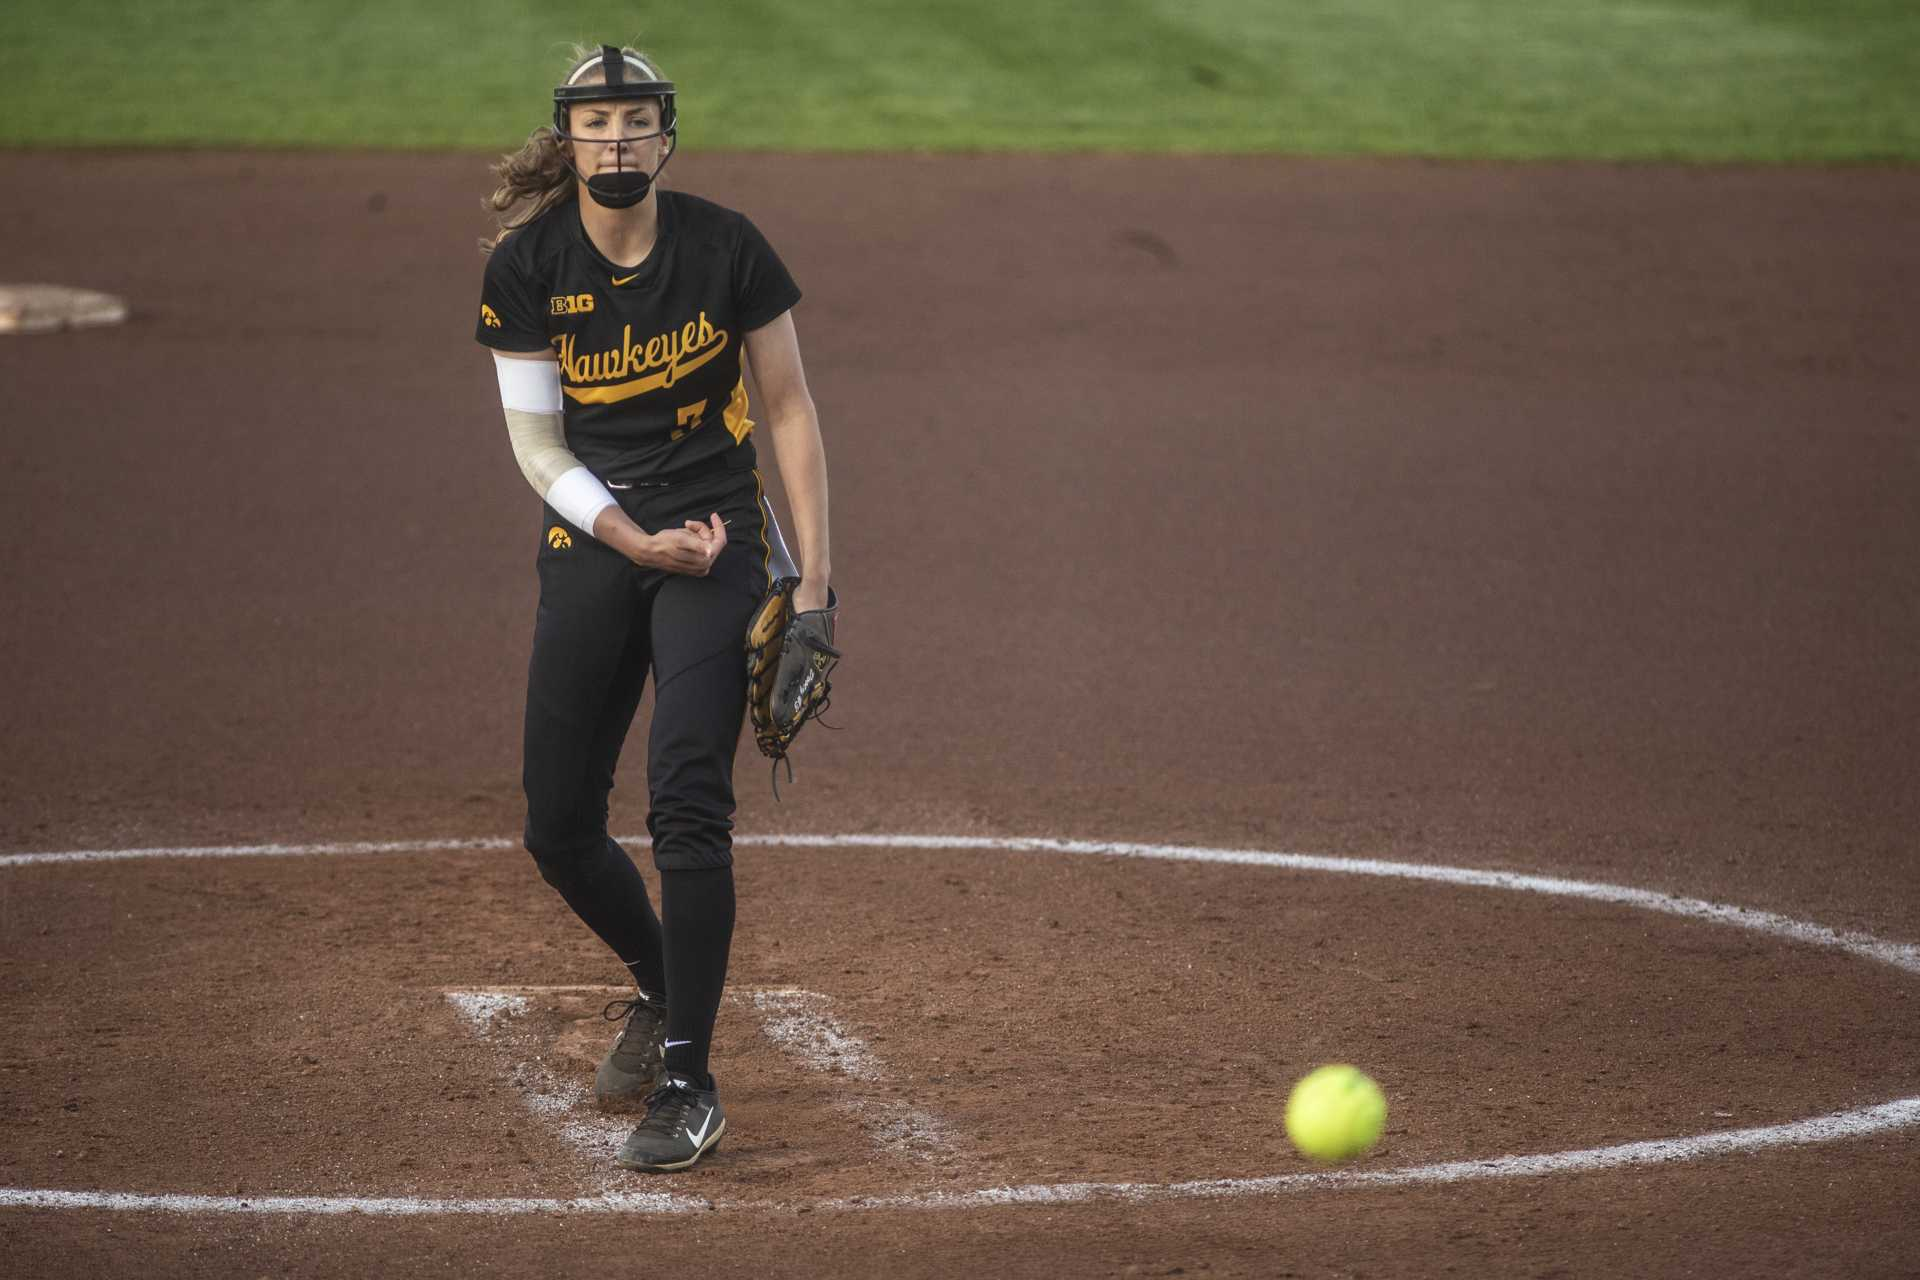 Iowa's Allison Doocy delivers a pitch during Iowa's Big Ten tournament game against Ohio State at the Goodman Softball complex in Madison, WI. The Hawkeyes defeated the Buckeyes, 5-1. (Nick Rohlman/The Daily Iowan)